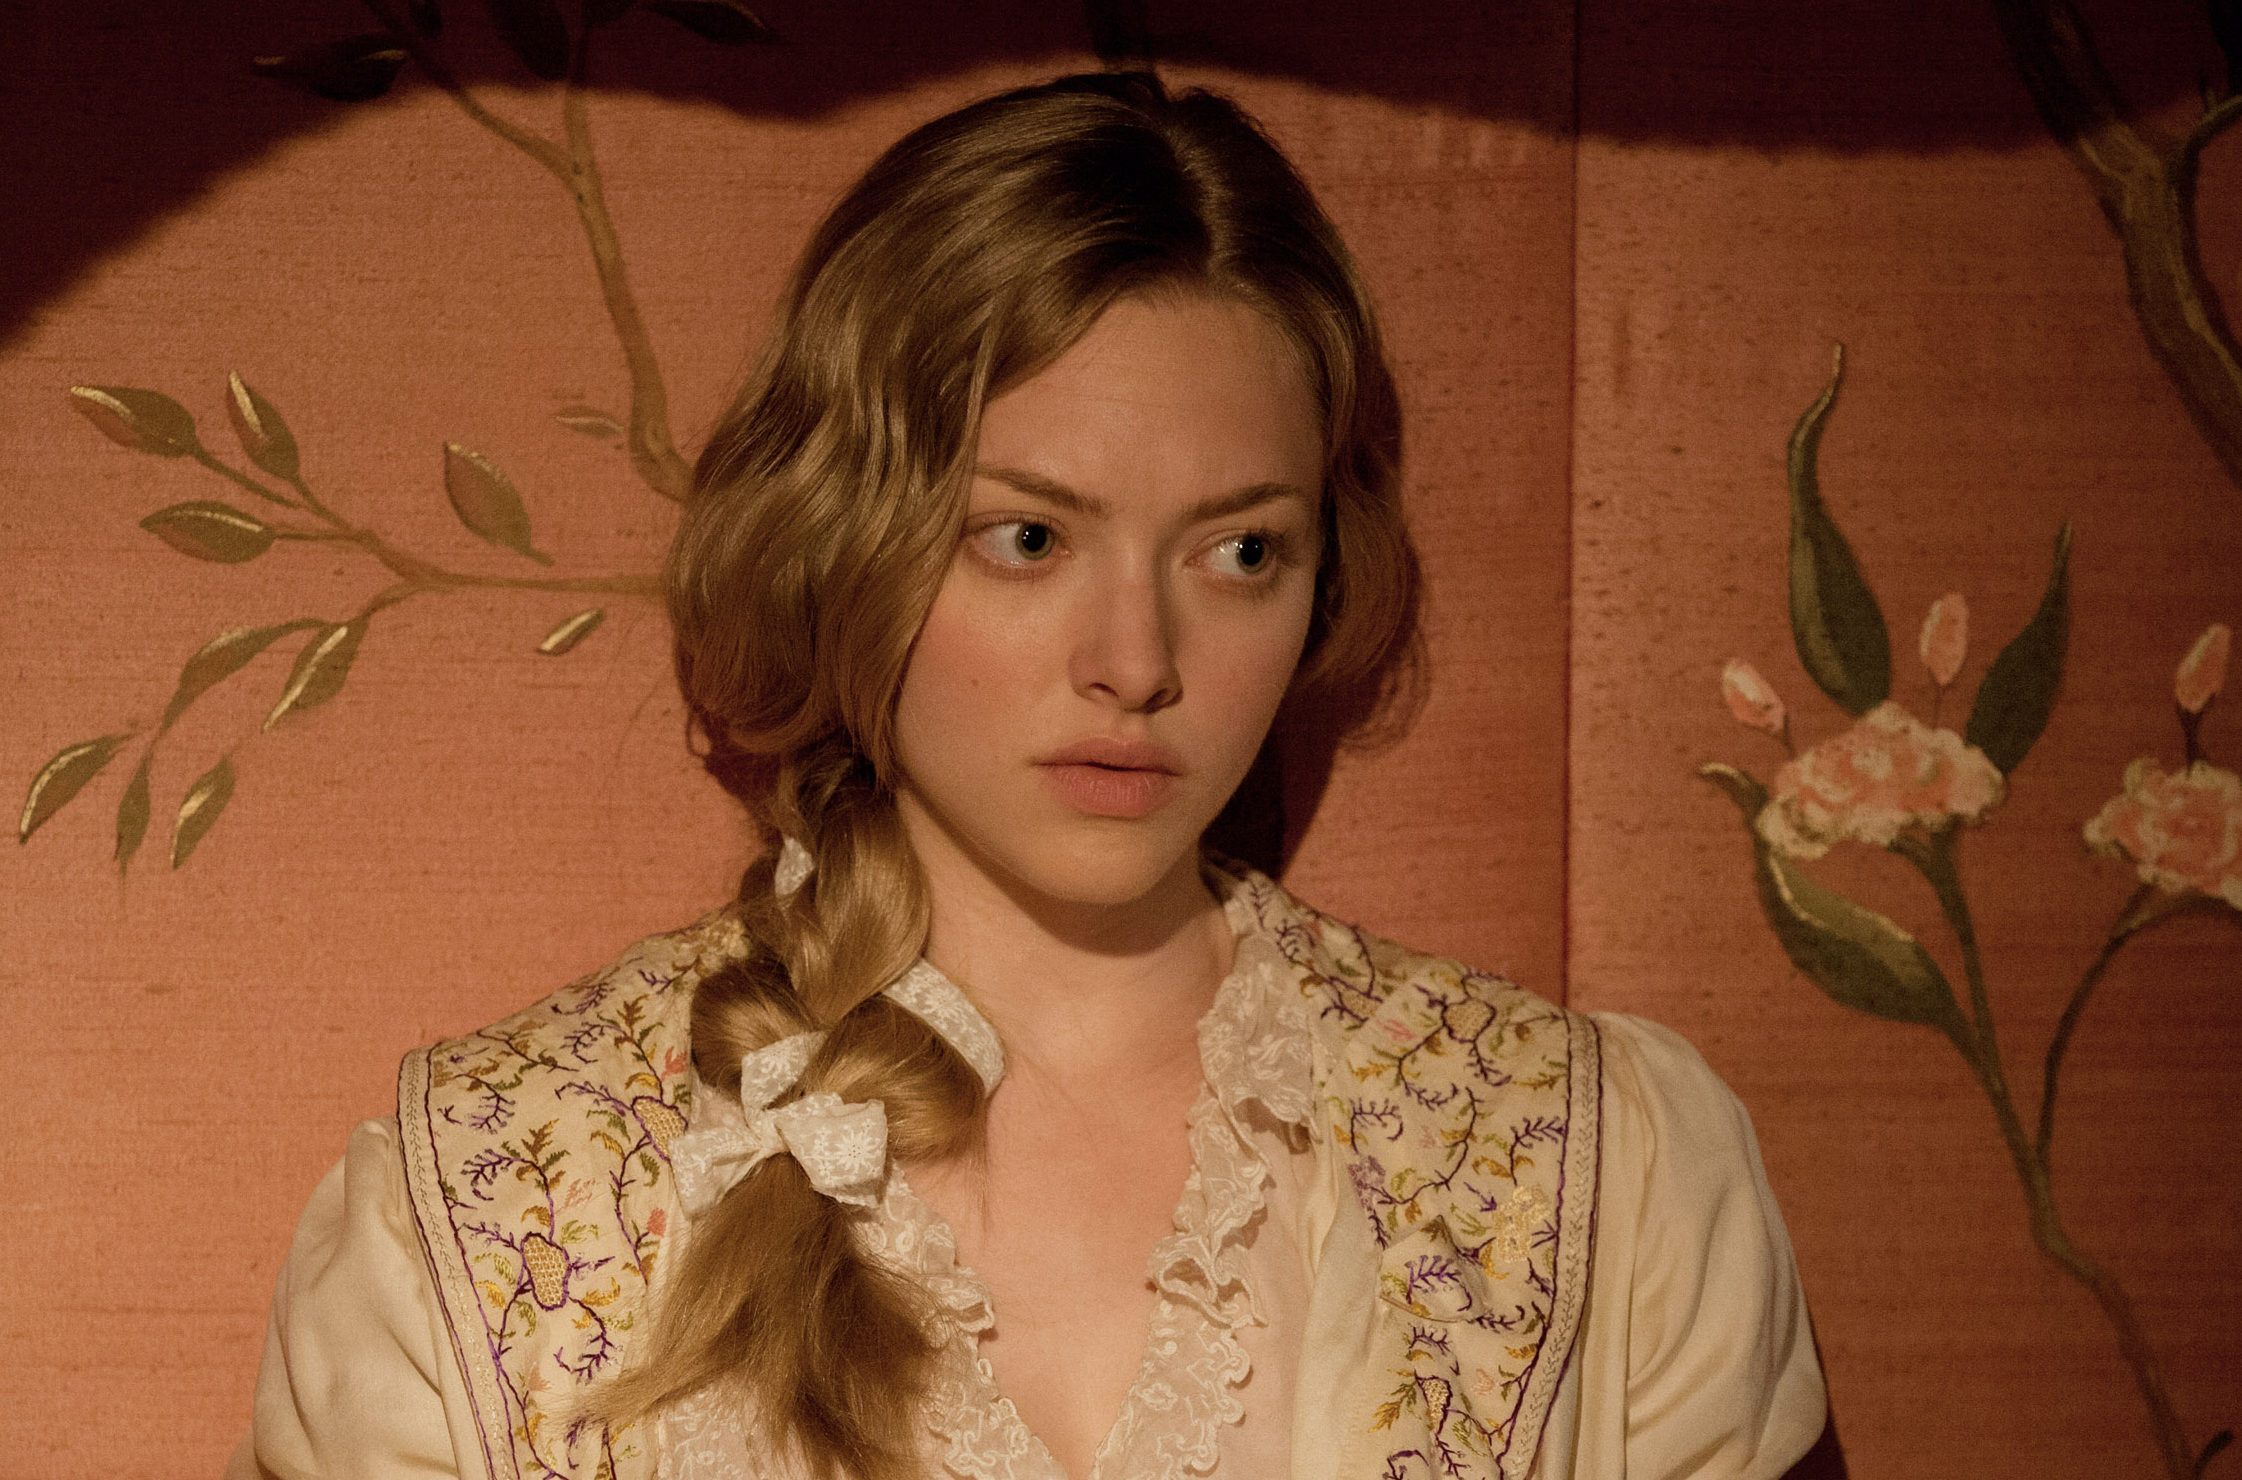 amanda seyfried 25 Things You Didn't Know About Les Misérables (2012)